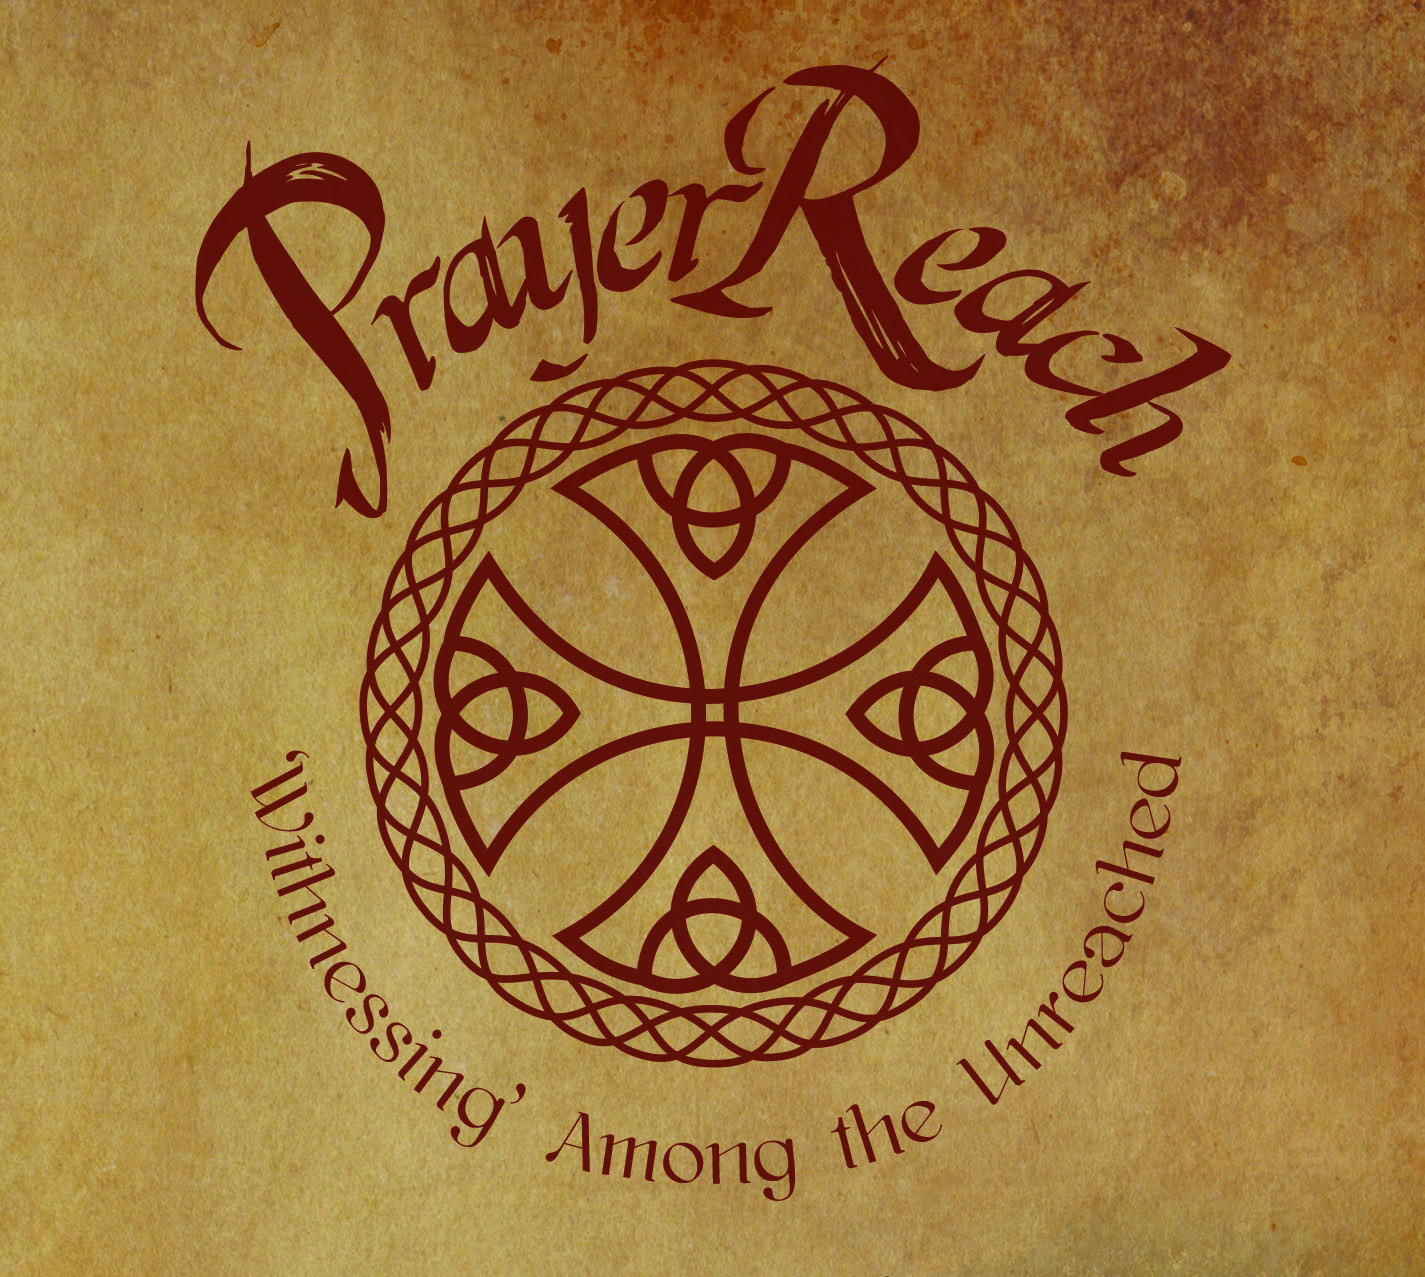 PrayerReach